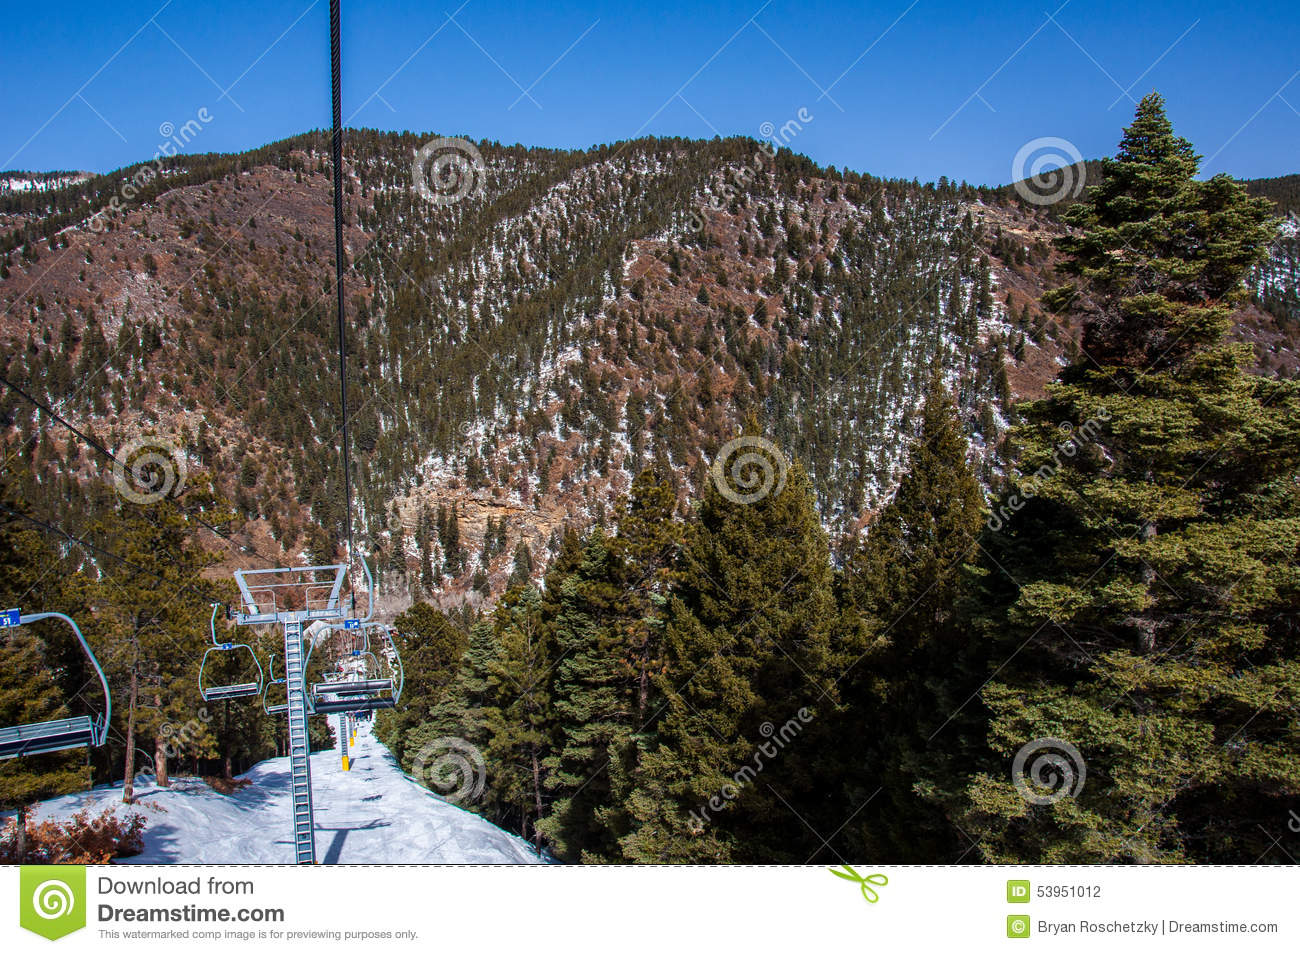 sipapu ski resort new mexico skiing top of life stock photo - image